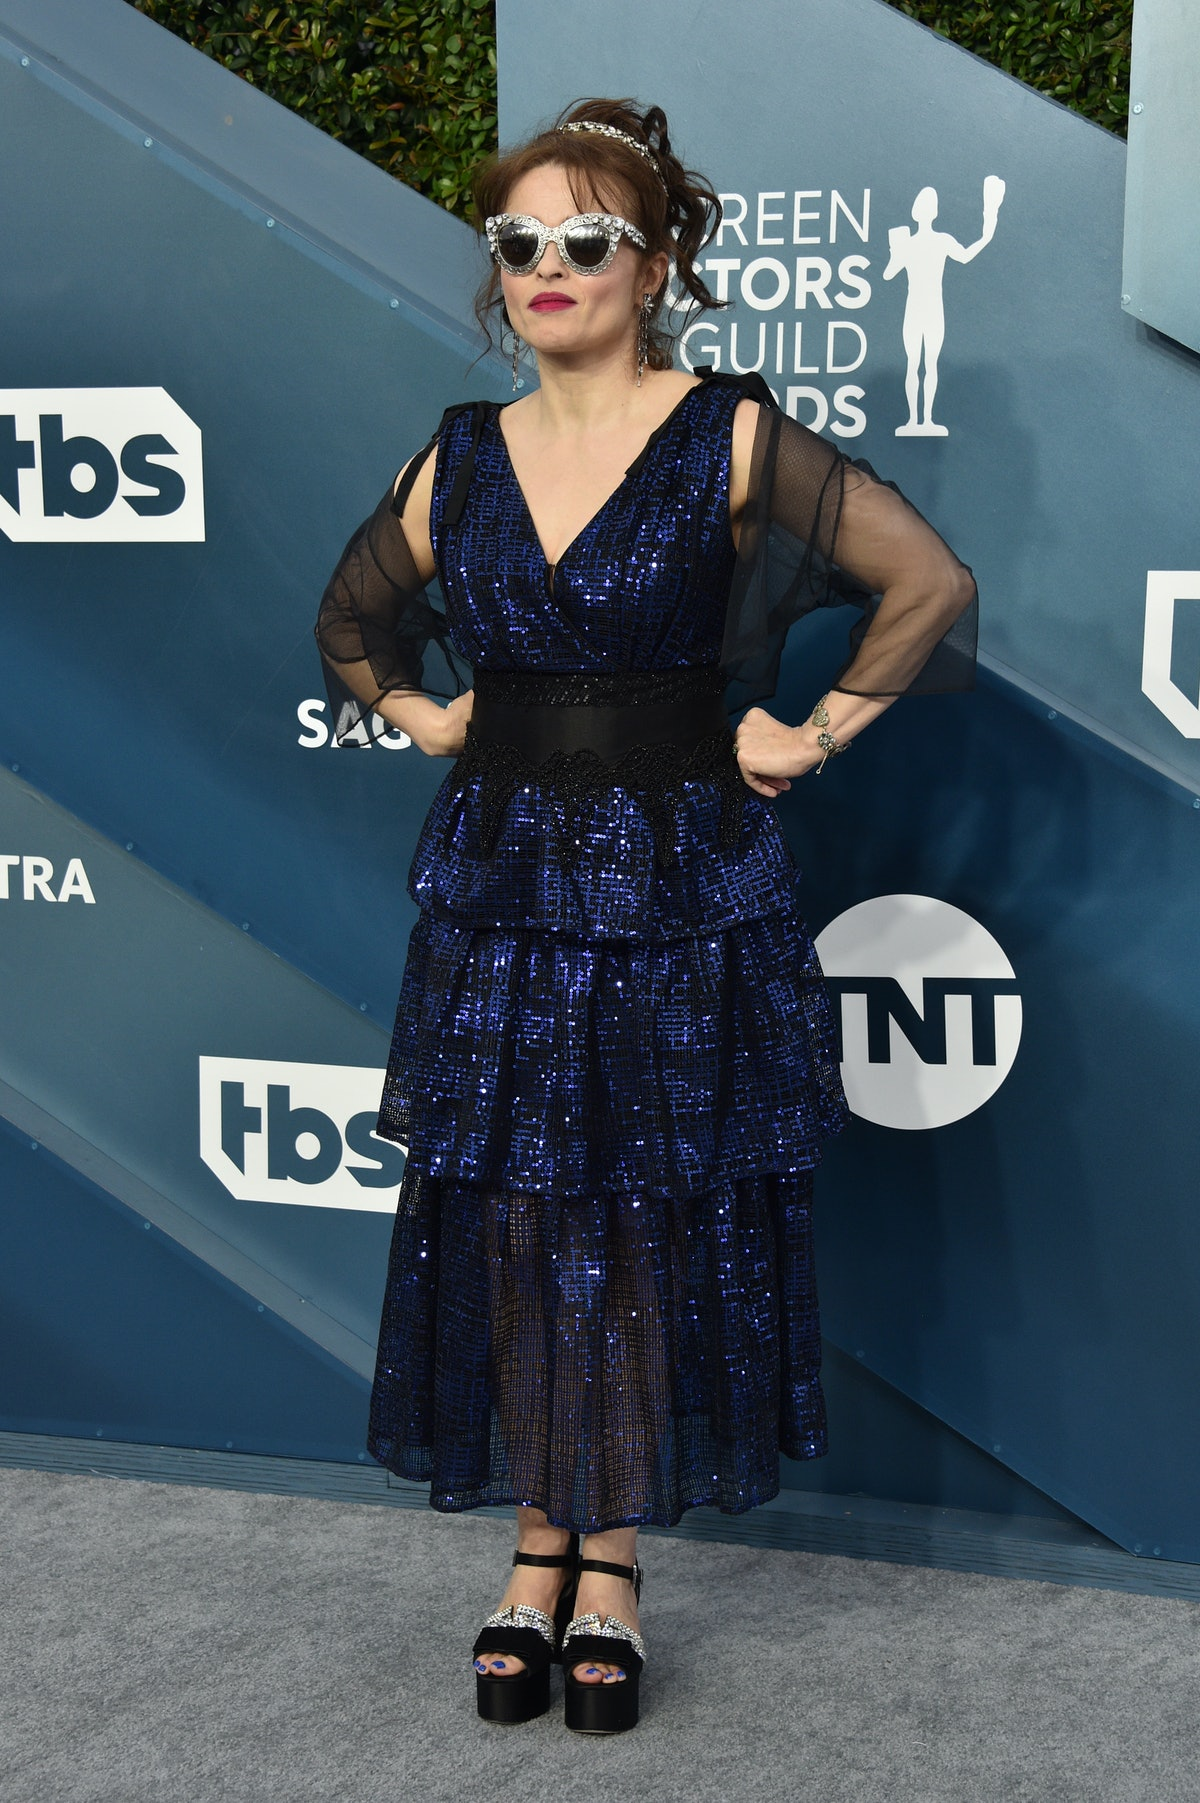 Helena Bonham Carter in a blue gown and silver sunnies